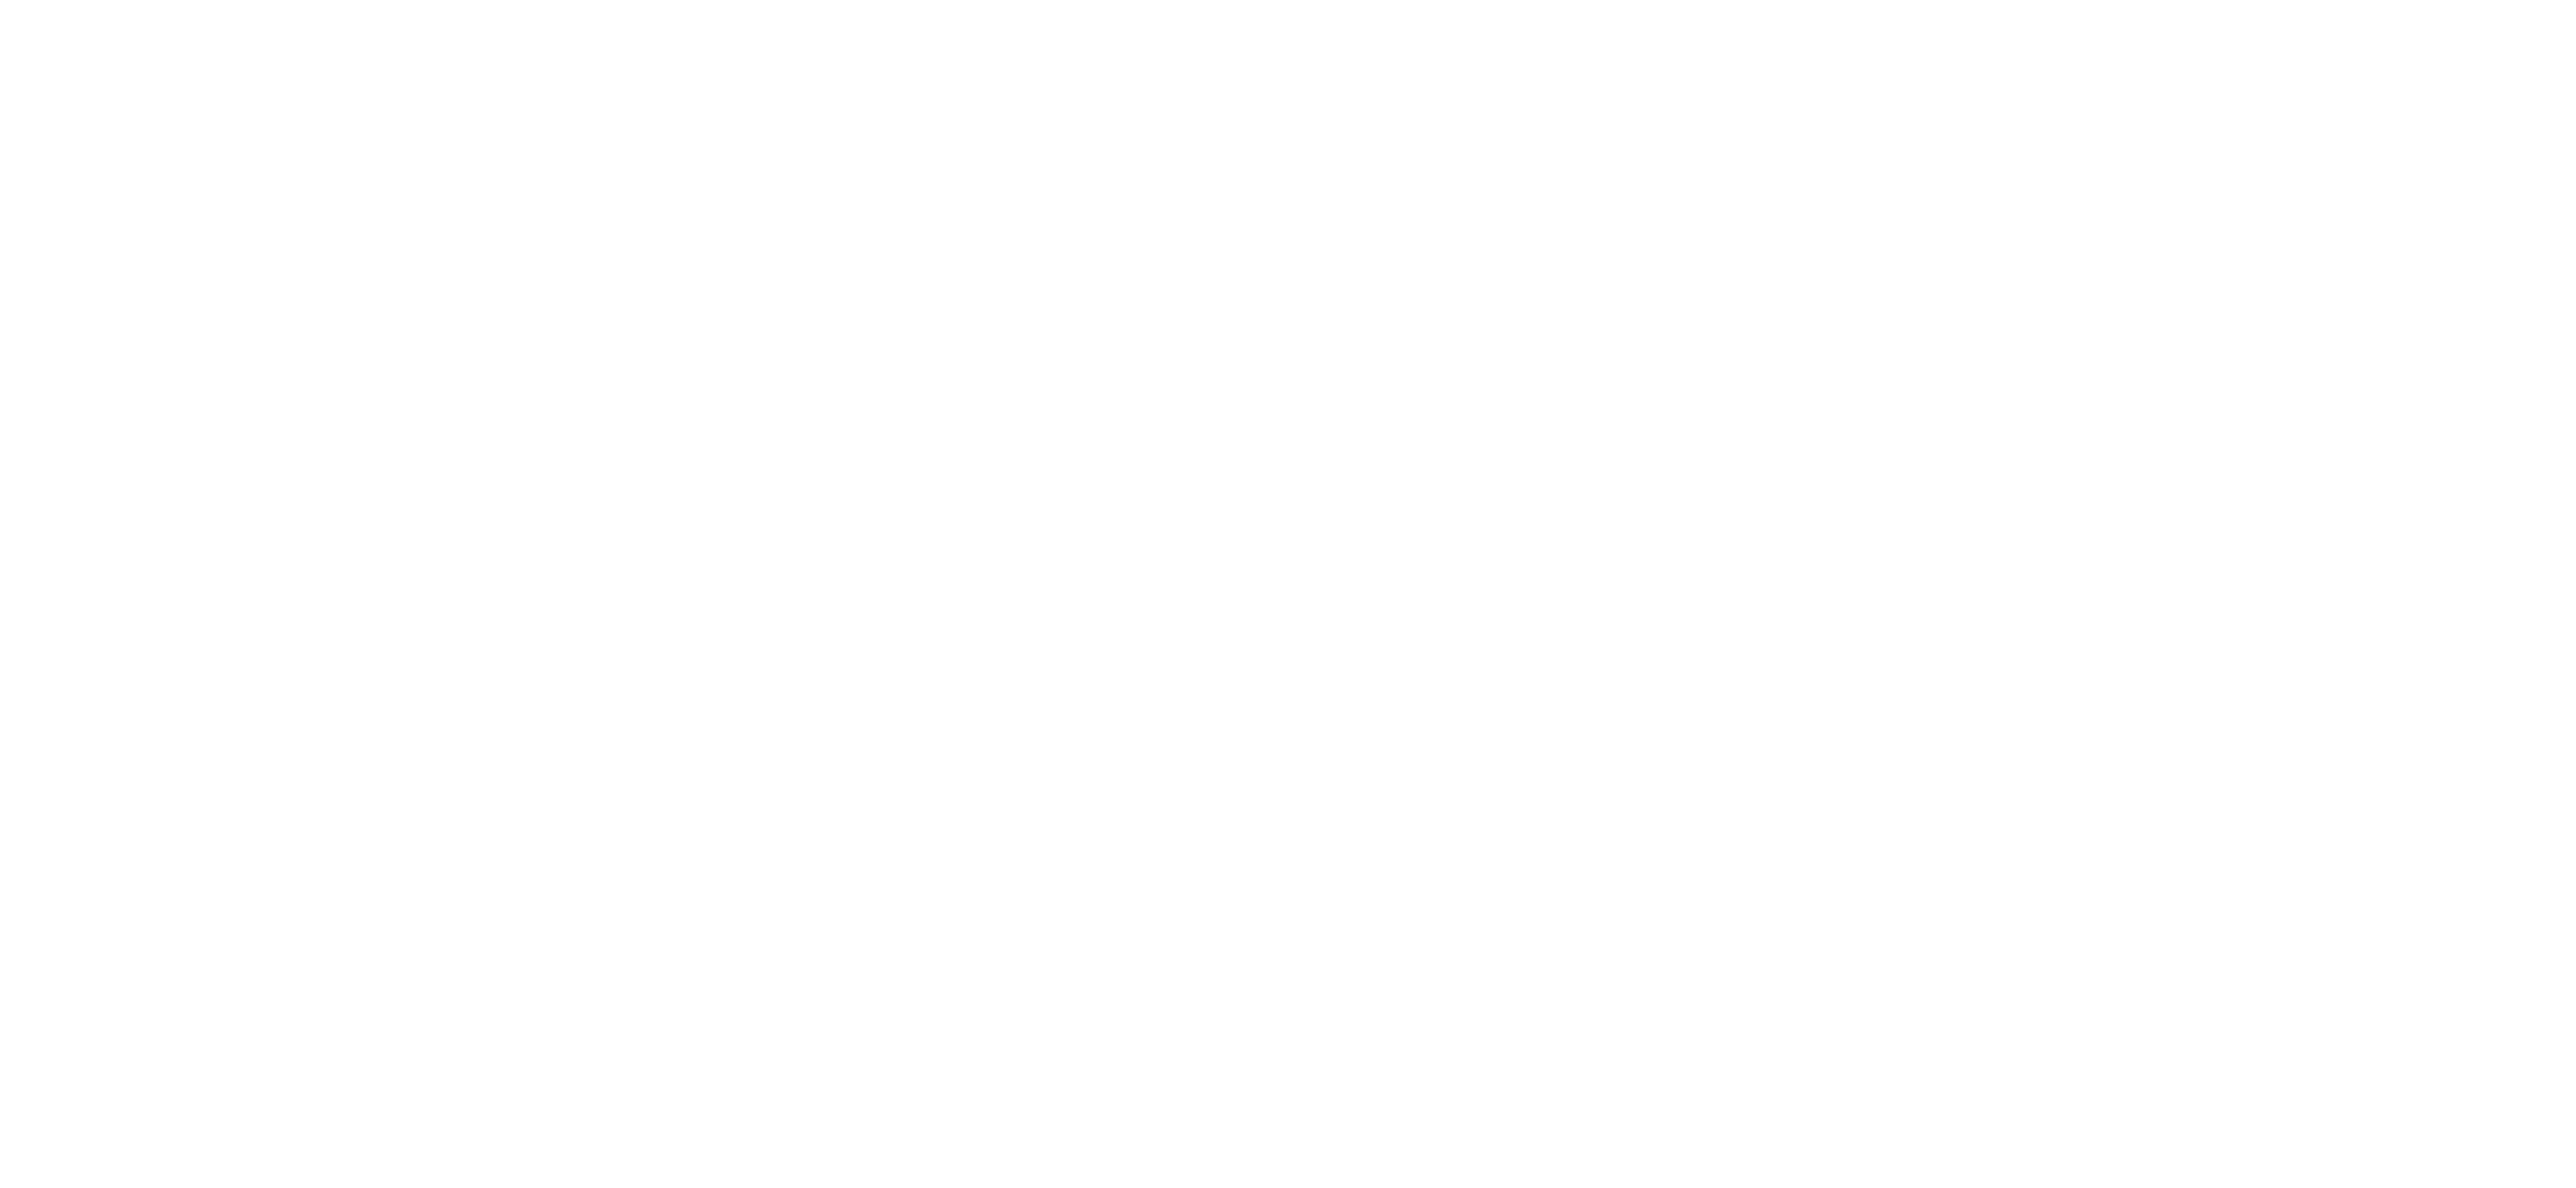 My Expedition